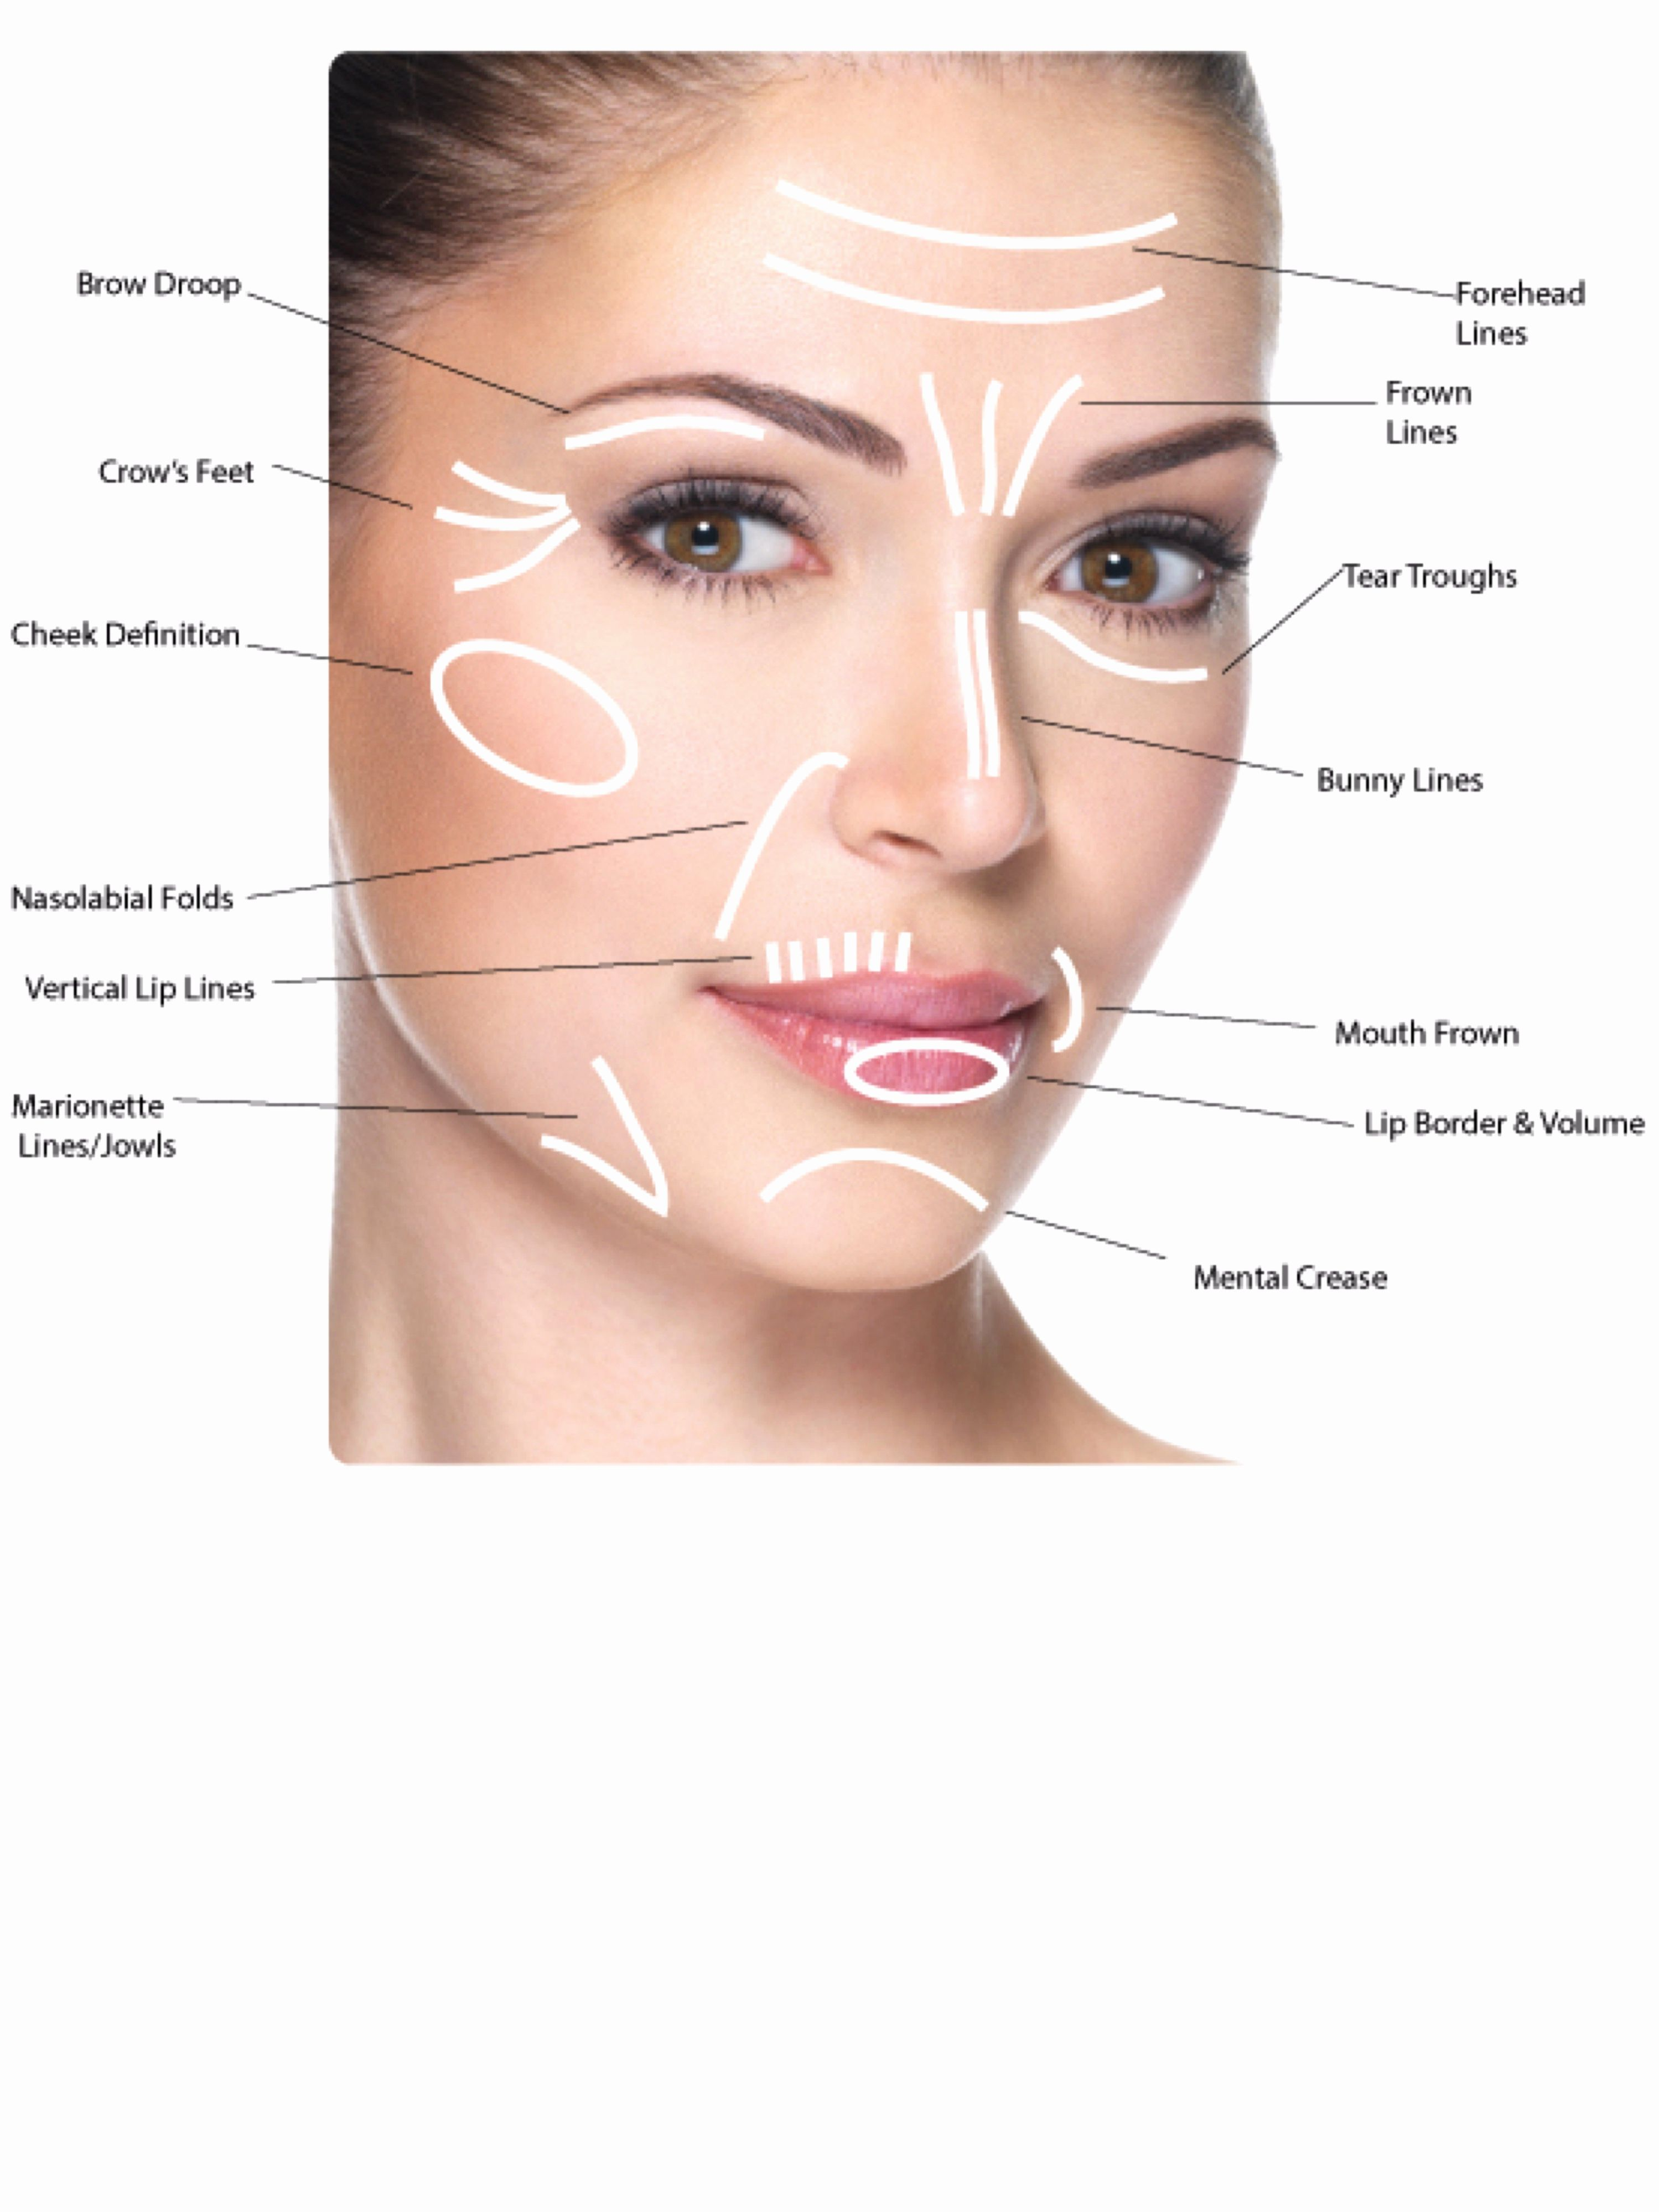 botox injection sites face diagram cosmetic procedures in 2019 botox injection sites. Black Bedroom Furniture Sets. Home Design Ideas